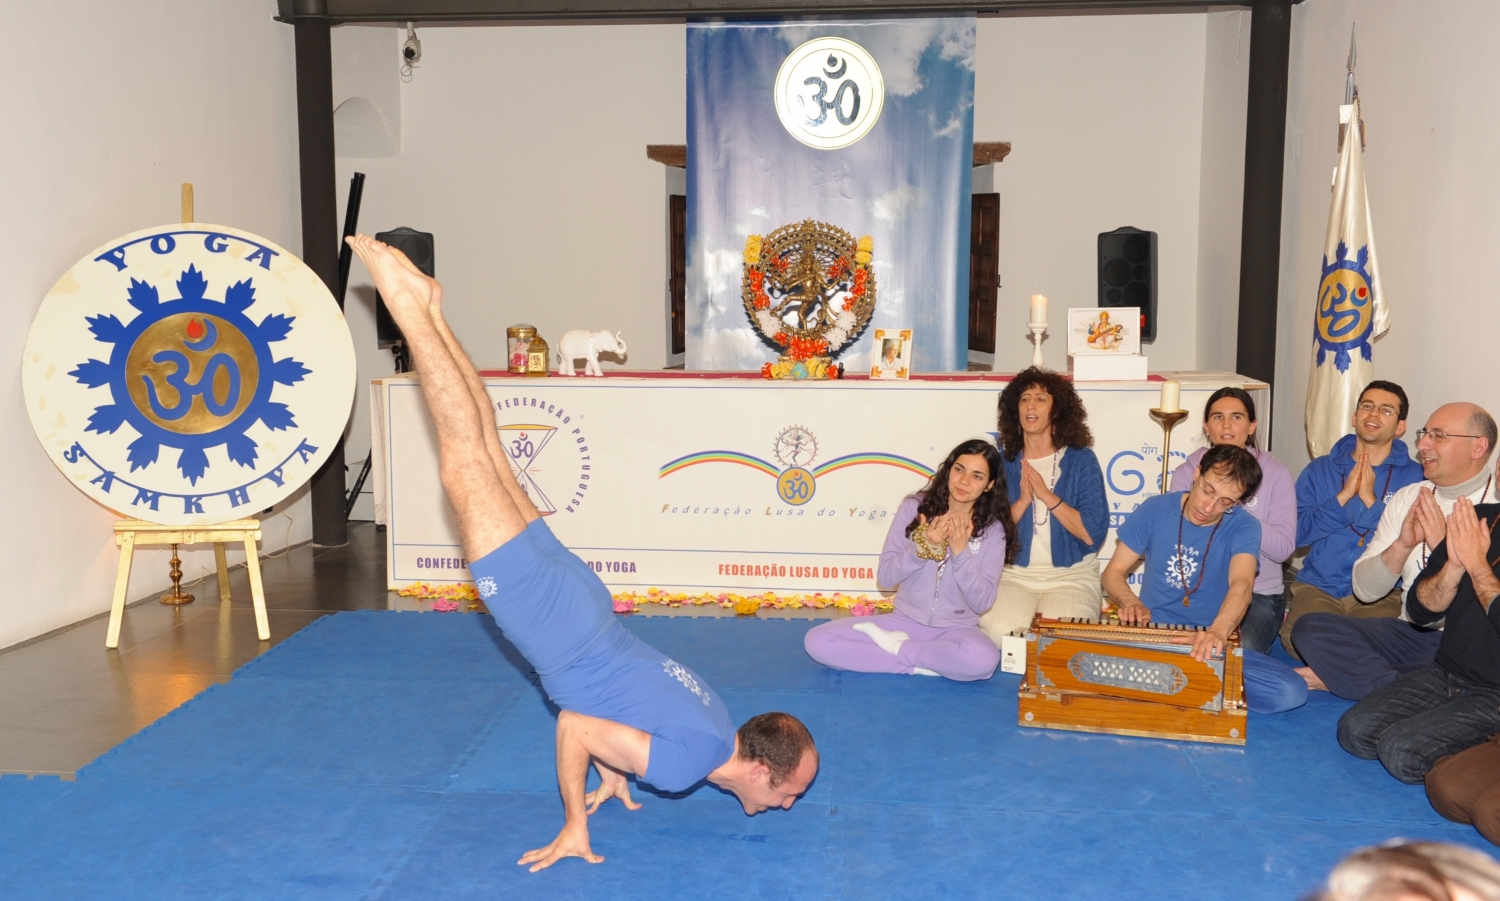 A Excelência do Pashupati - Demonstradores do Yoga Tradicional Avançado